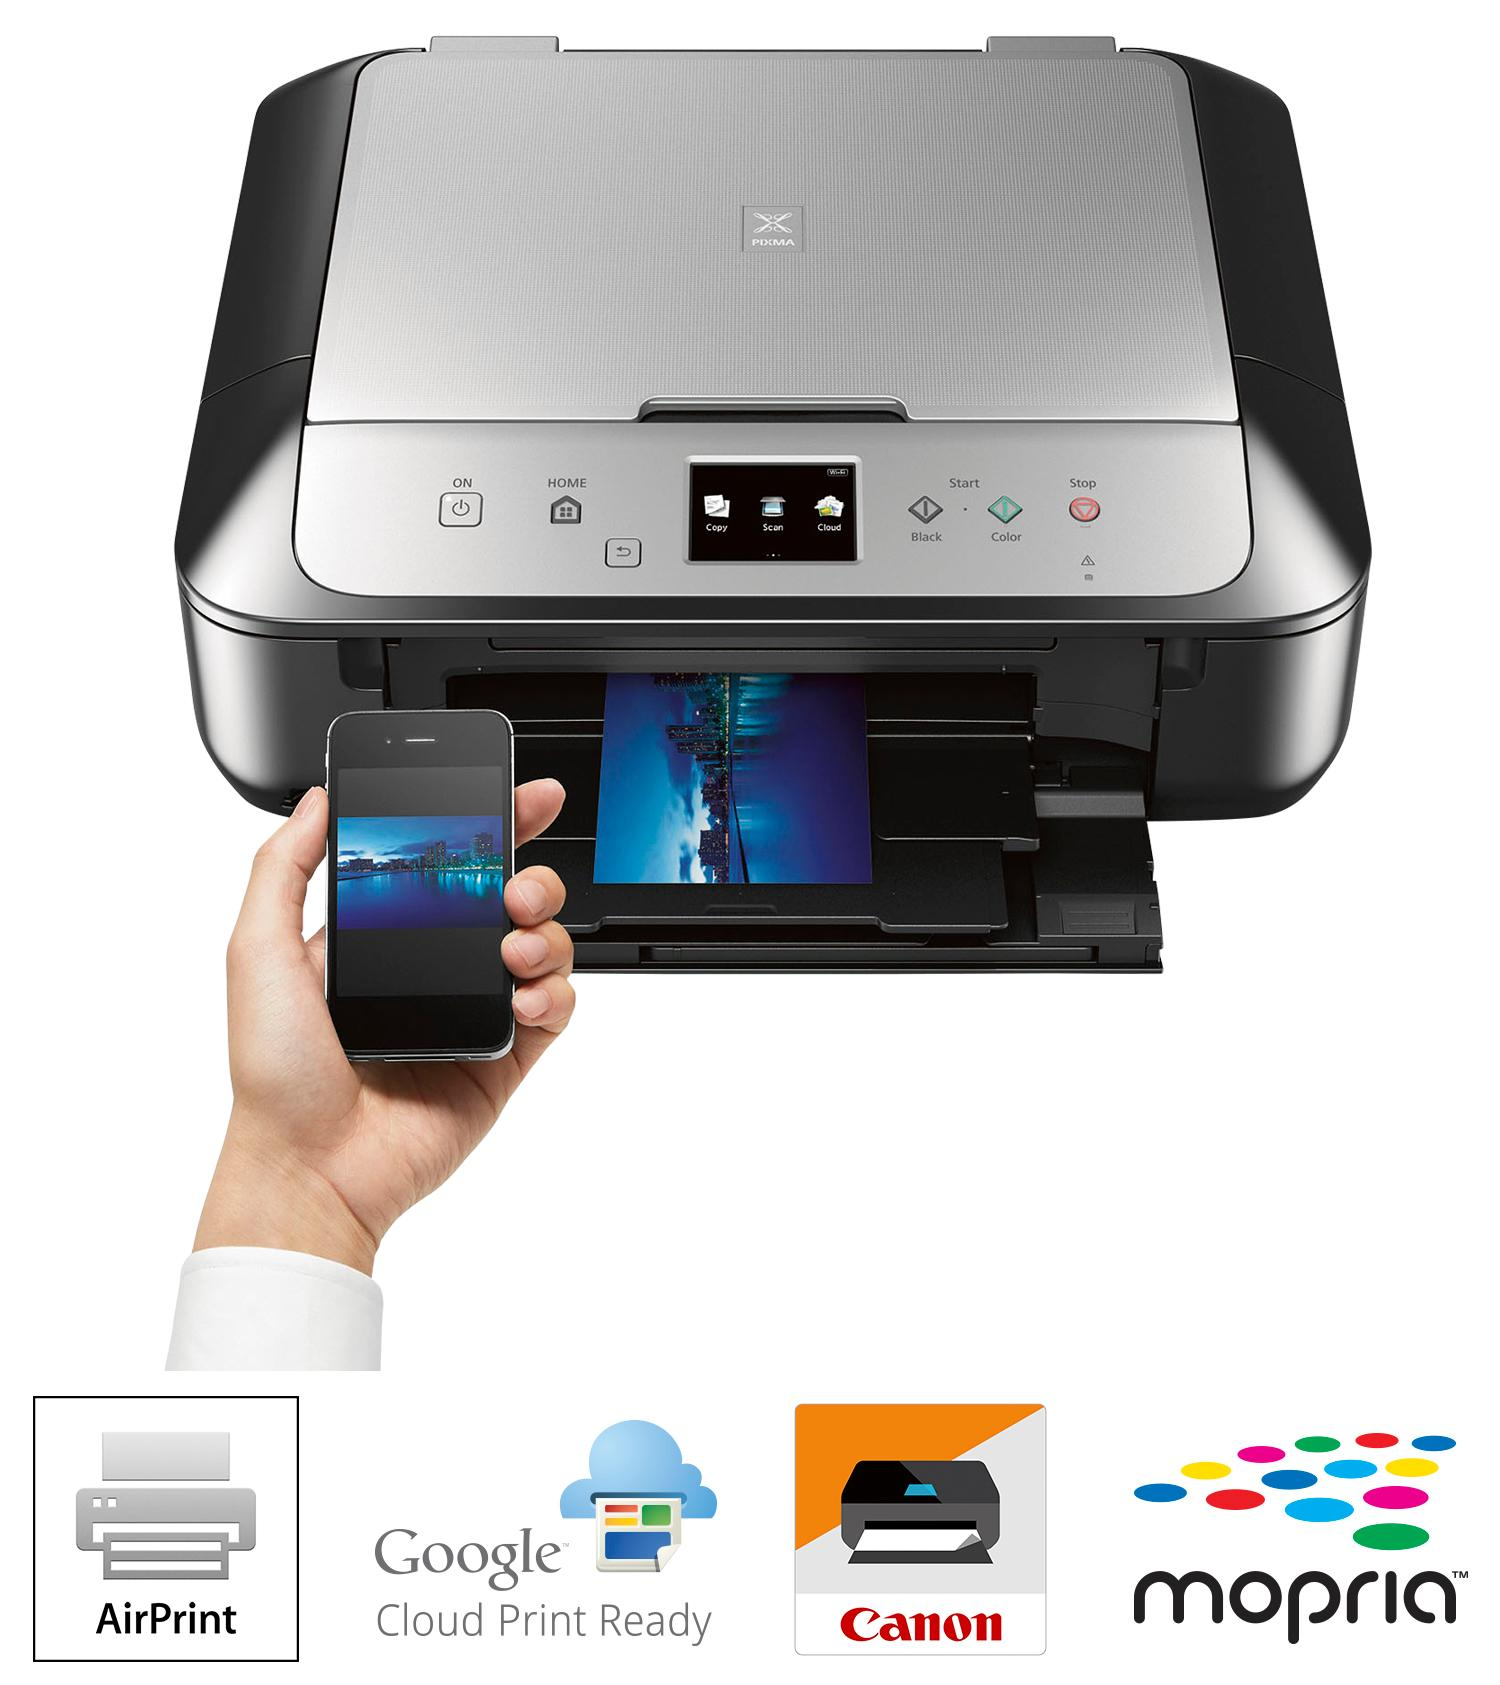 how to connect iphone to canon printer wirelessly